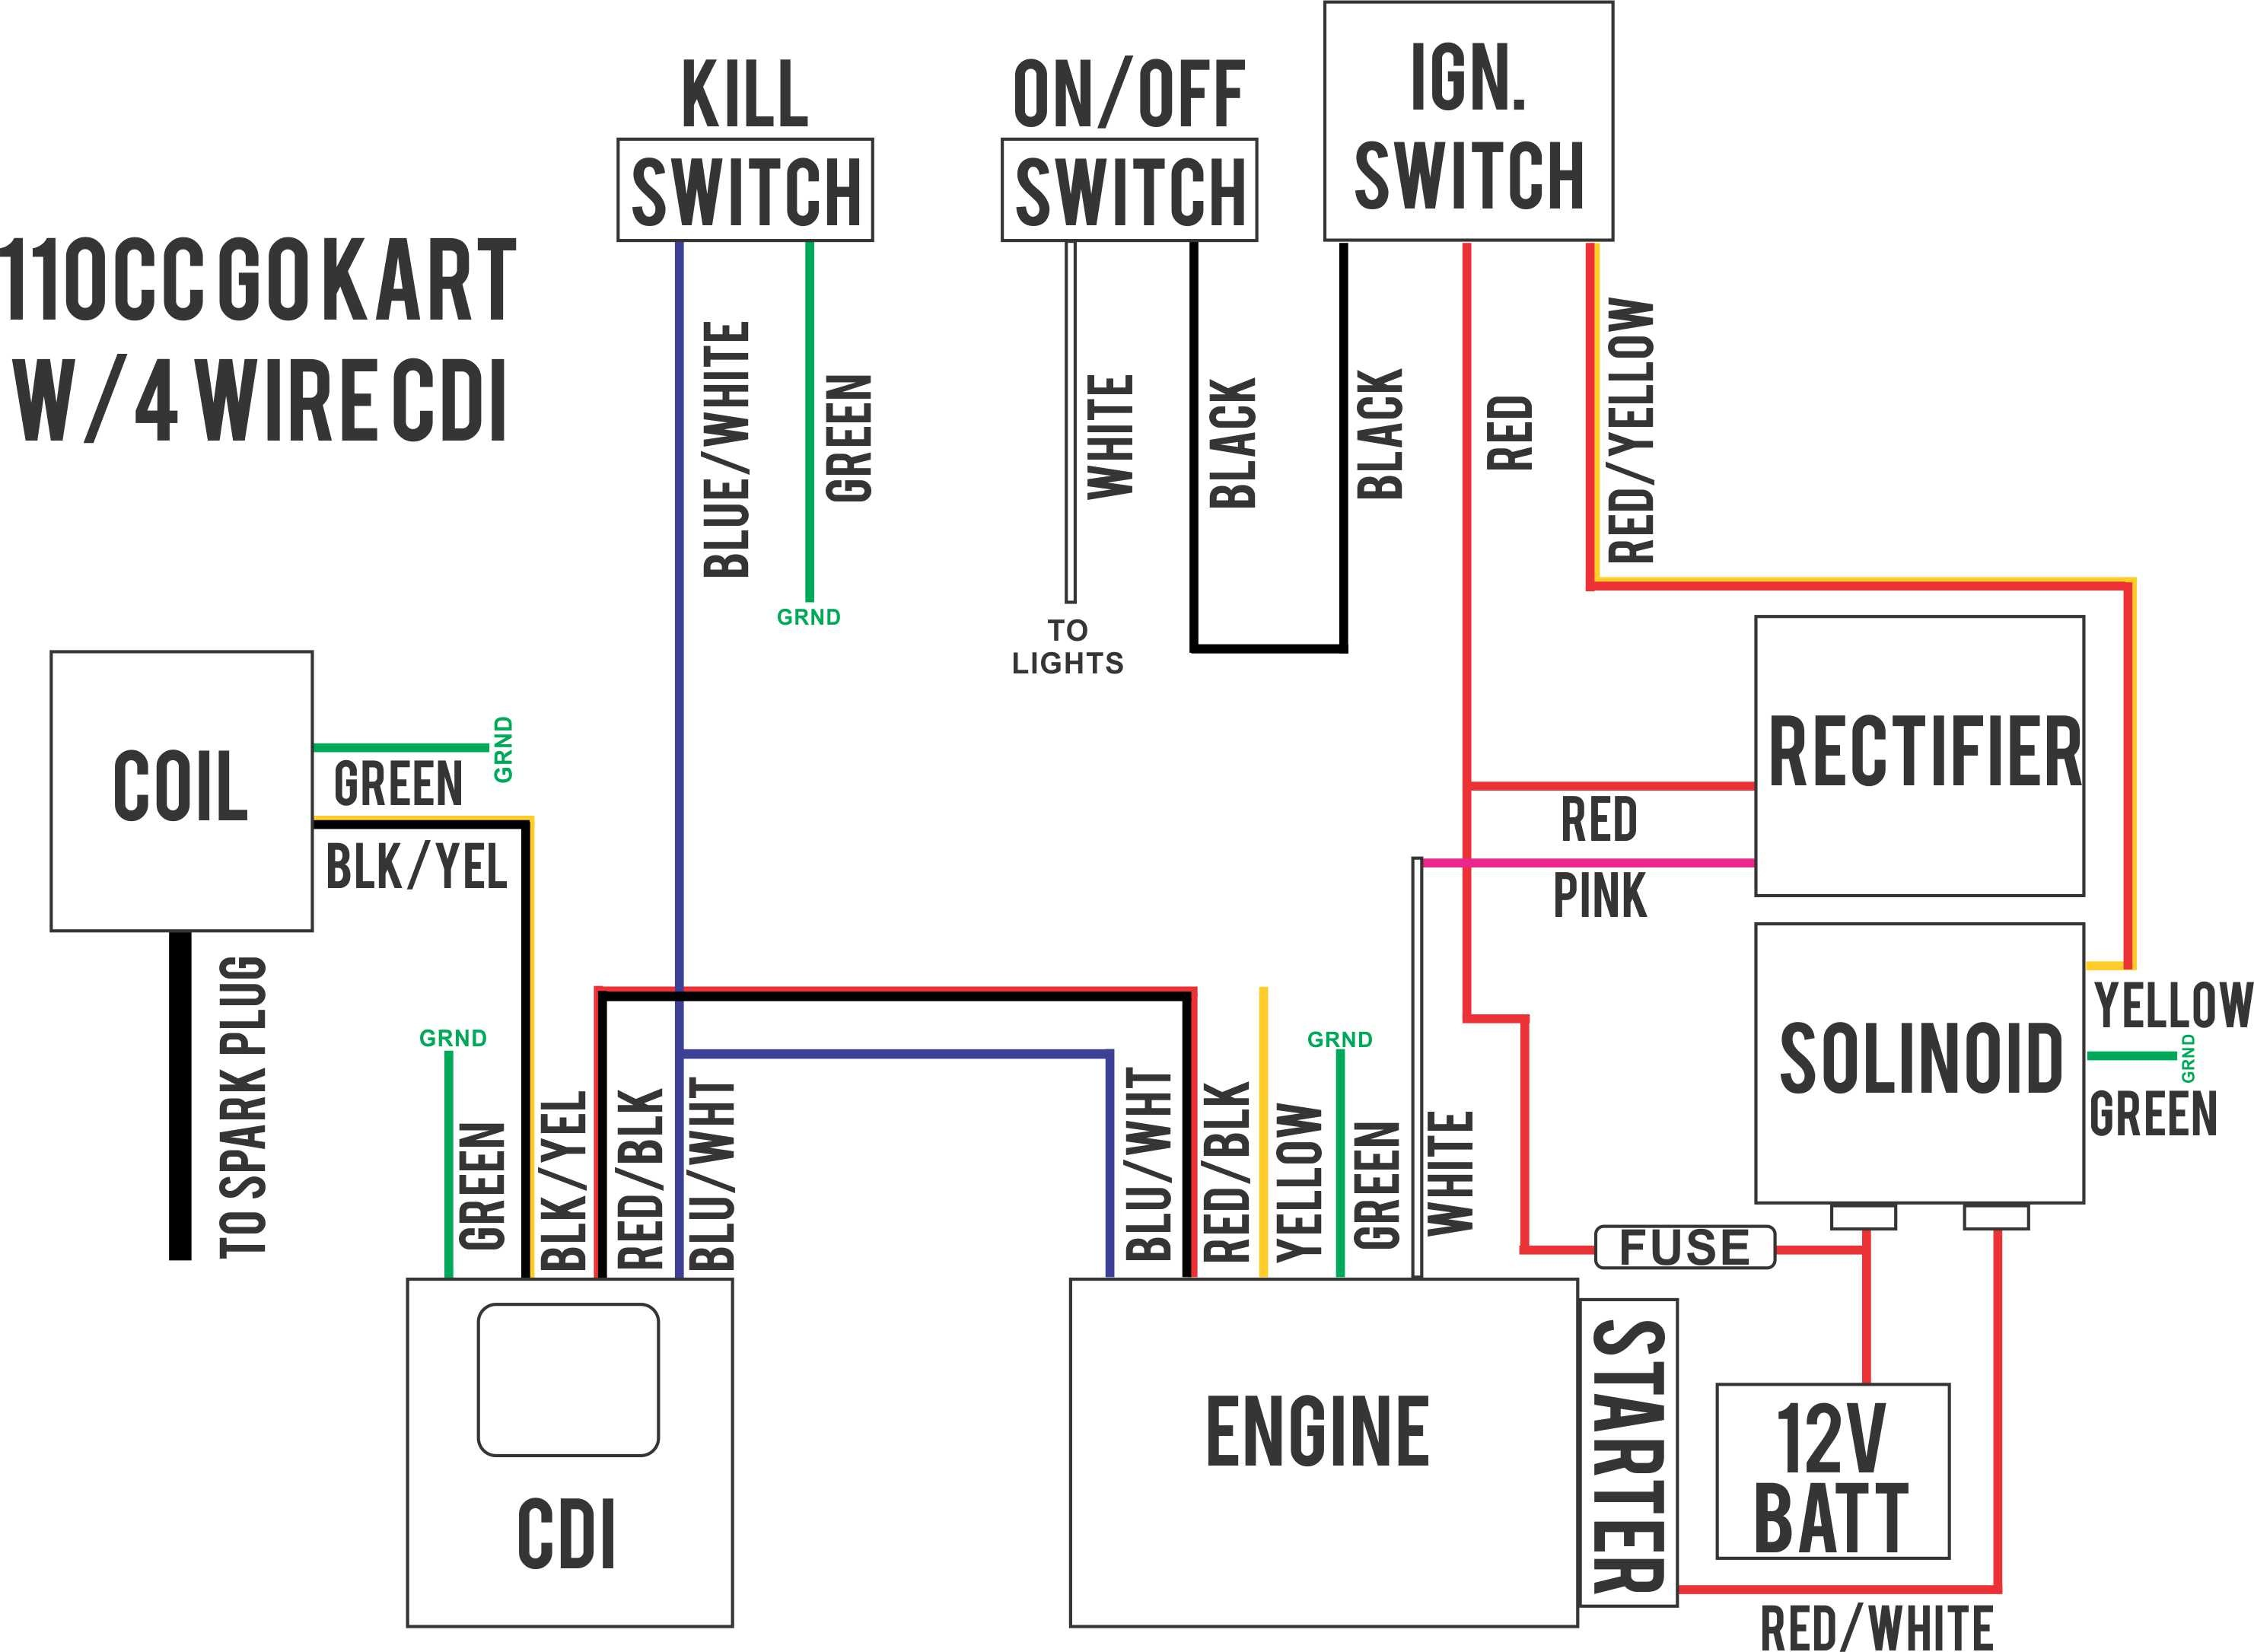 110 atv wiring harness wiring diagram Suzuki ATV Wiring 110 atv wiring harness wiring diagram read buyang 110cc atv wiring harness 110 atv wiring harness